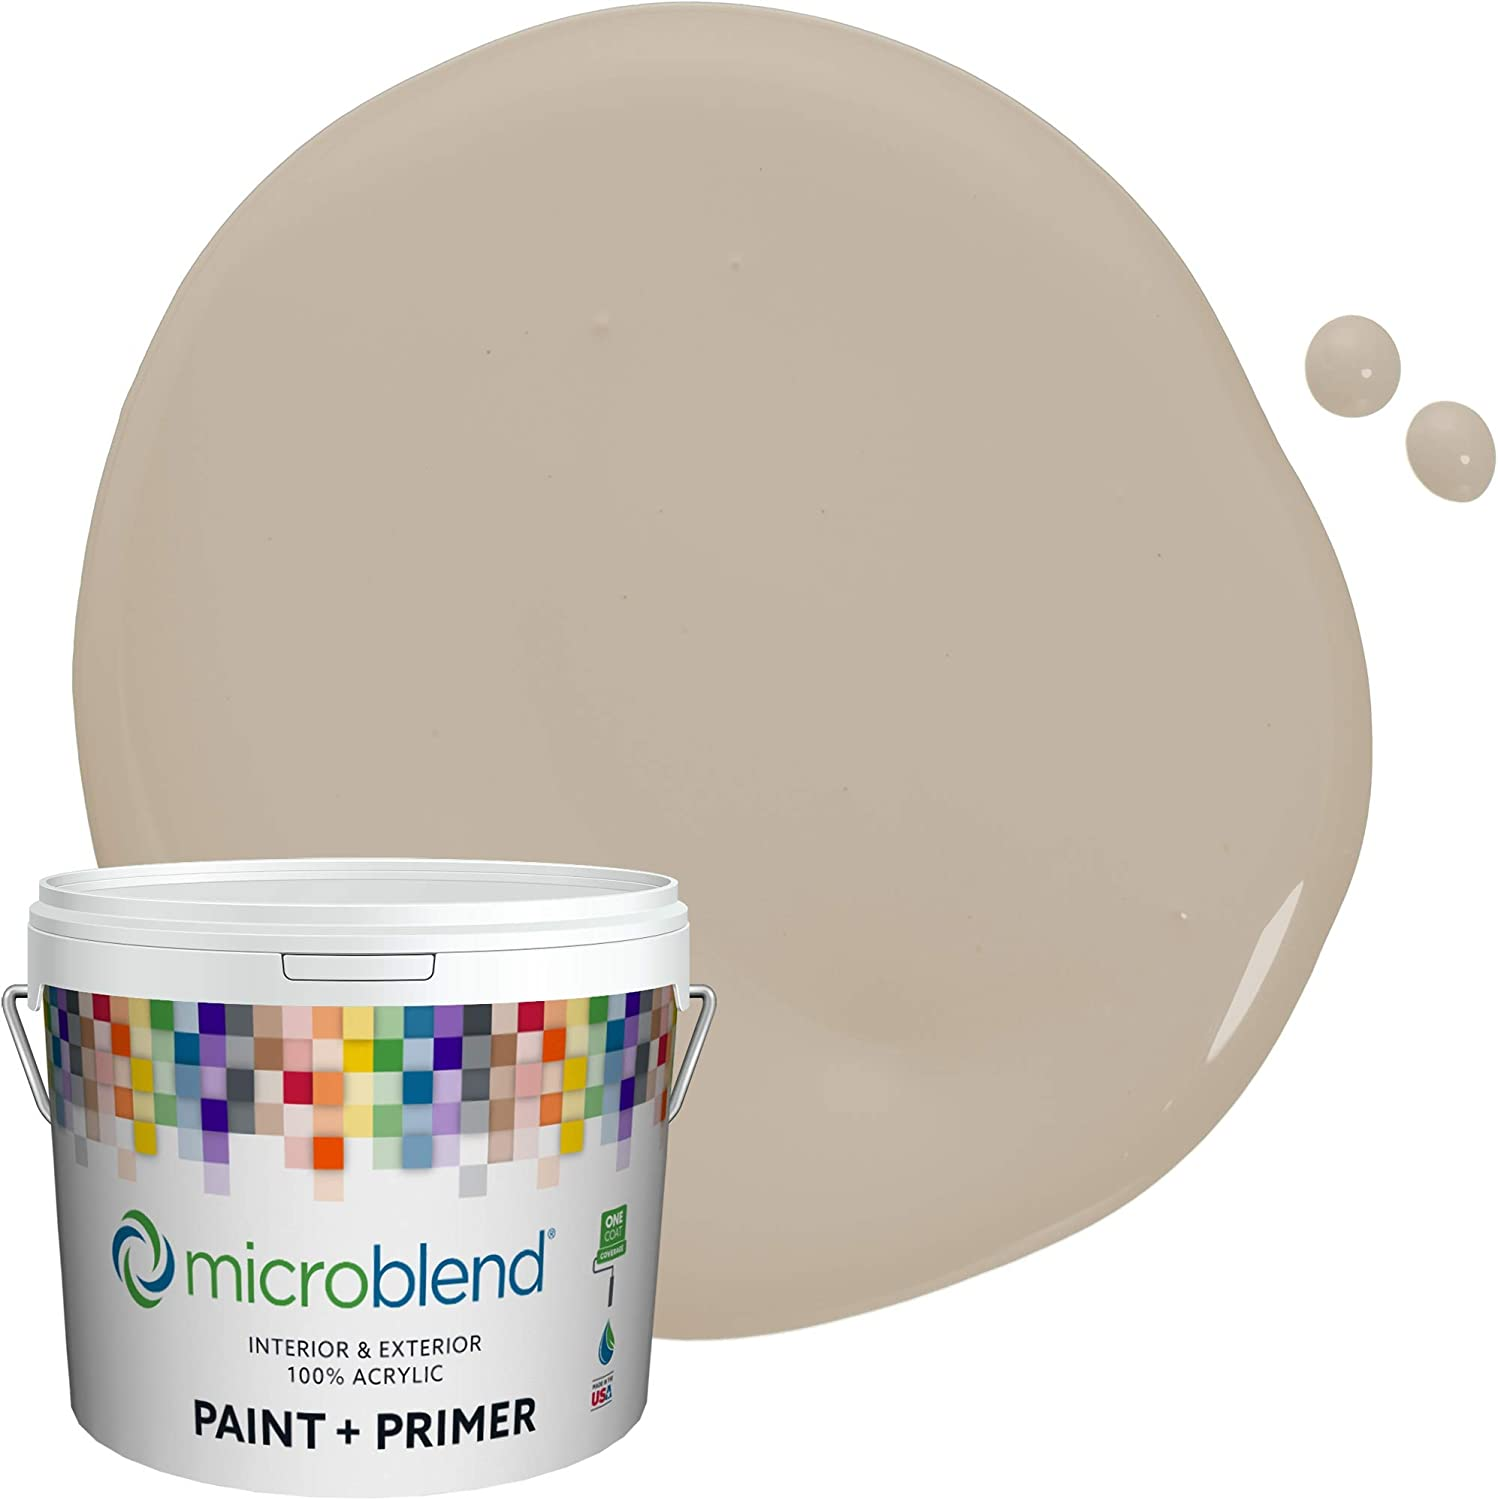 Microblend Interior Paint and Primer - Taupe/Italian Marble, Semi-gloss Sheen, Quart, Premium Quality, One Coat Hide, Low VOC, Washable, Microblend Browns Family